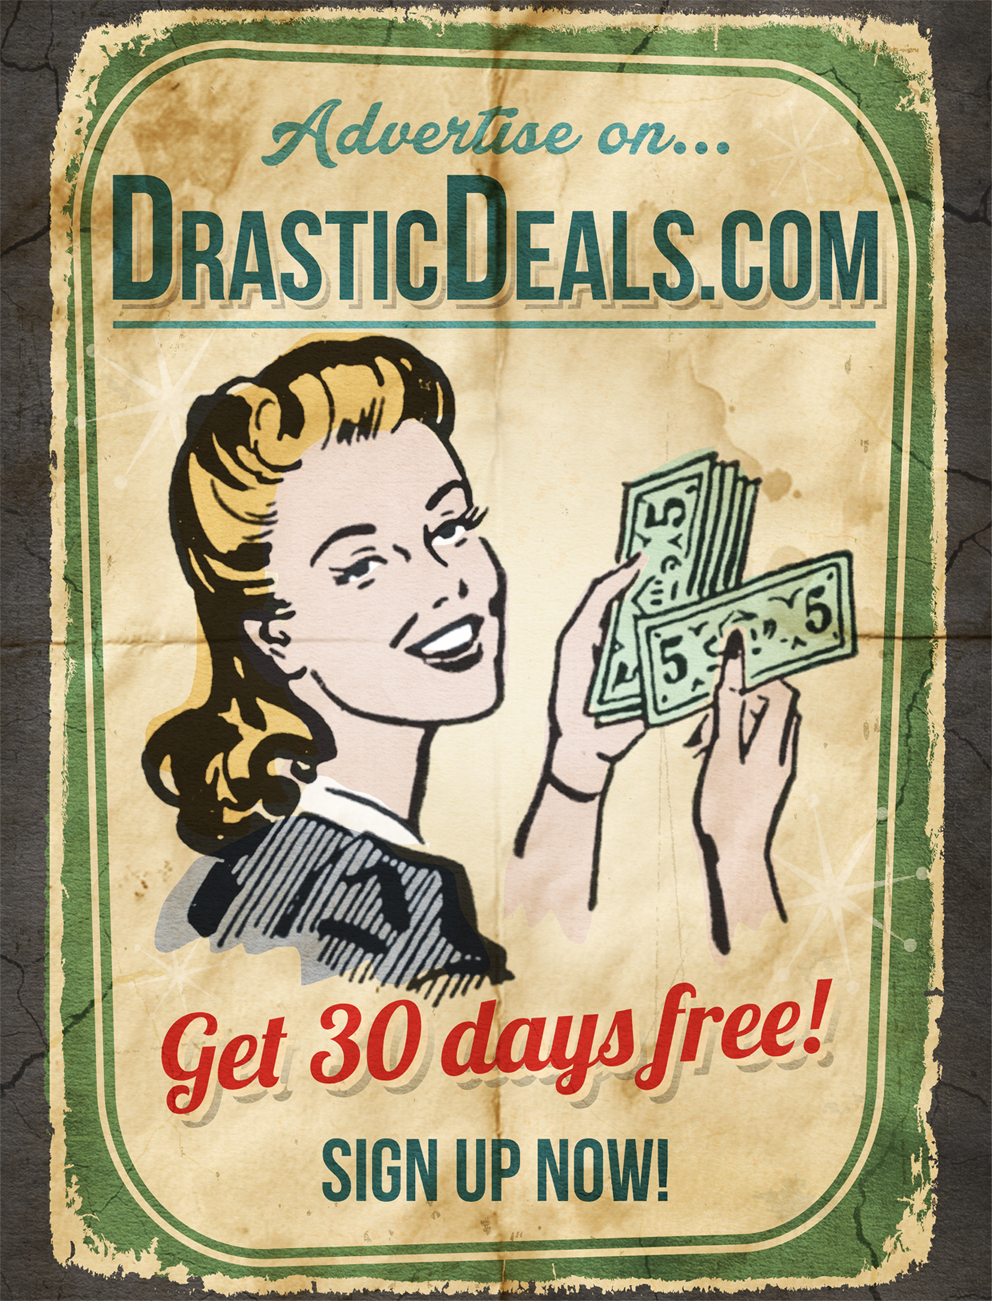 DrasticDeals.com Advertising